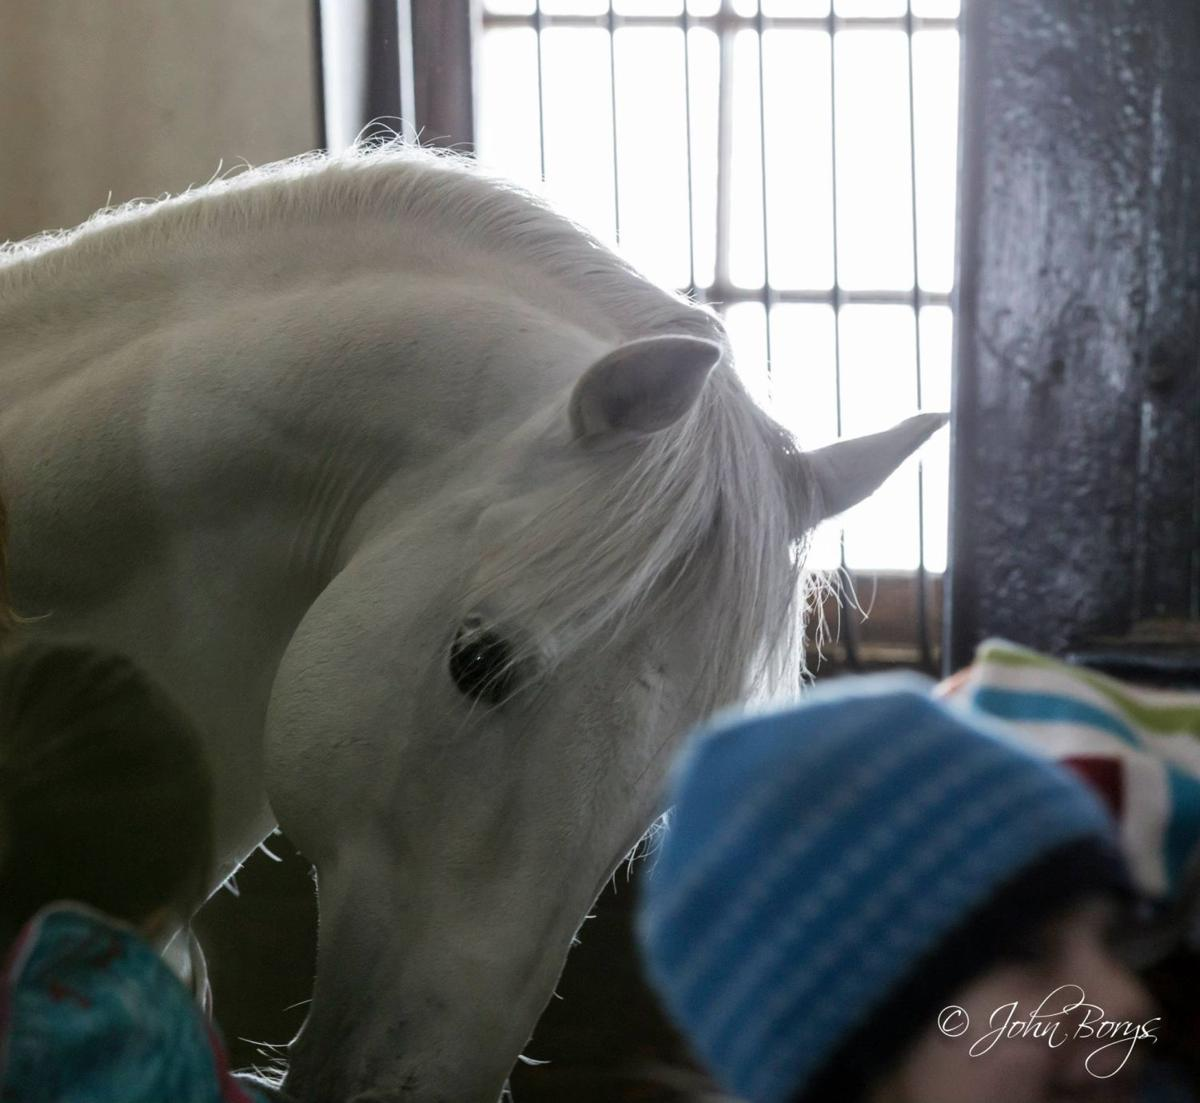 Meeting the Stallions